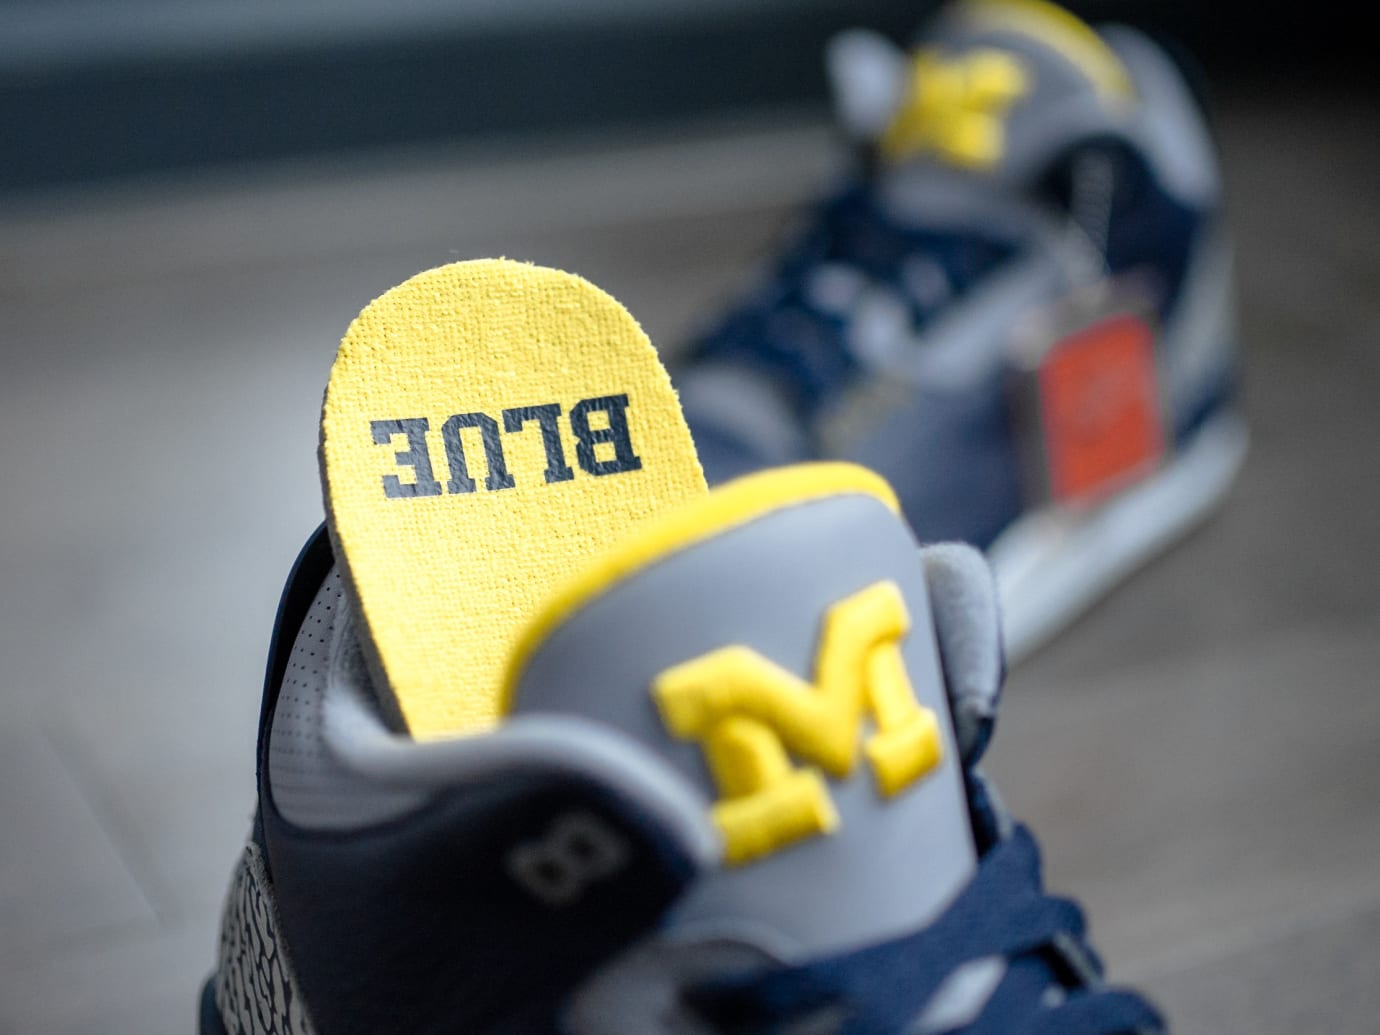 Air Jordan 3 'Michigan' PE (Tongue and Insole)